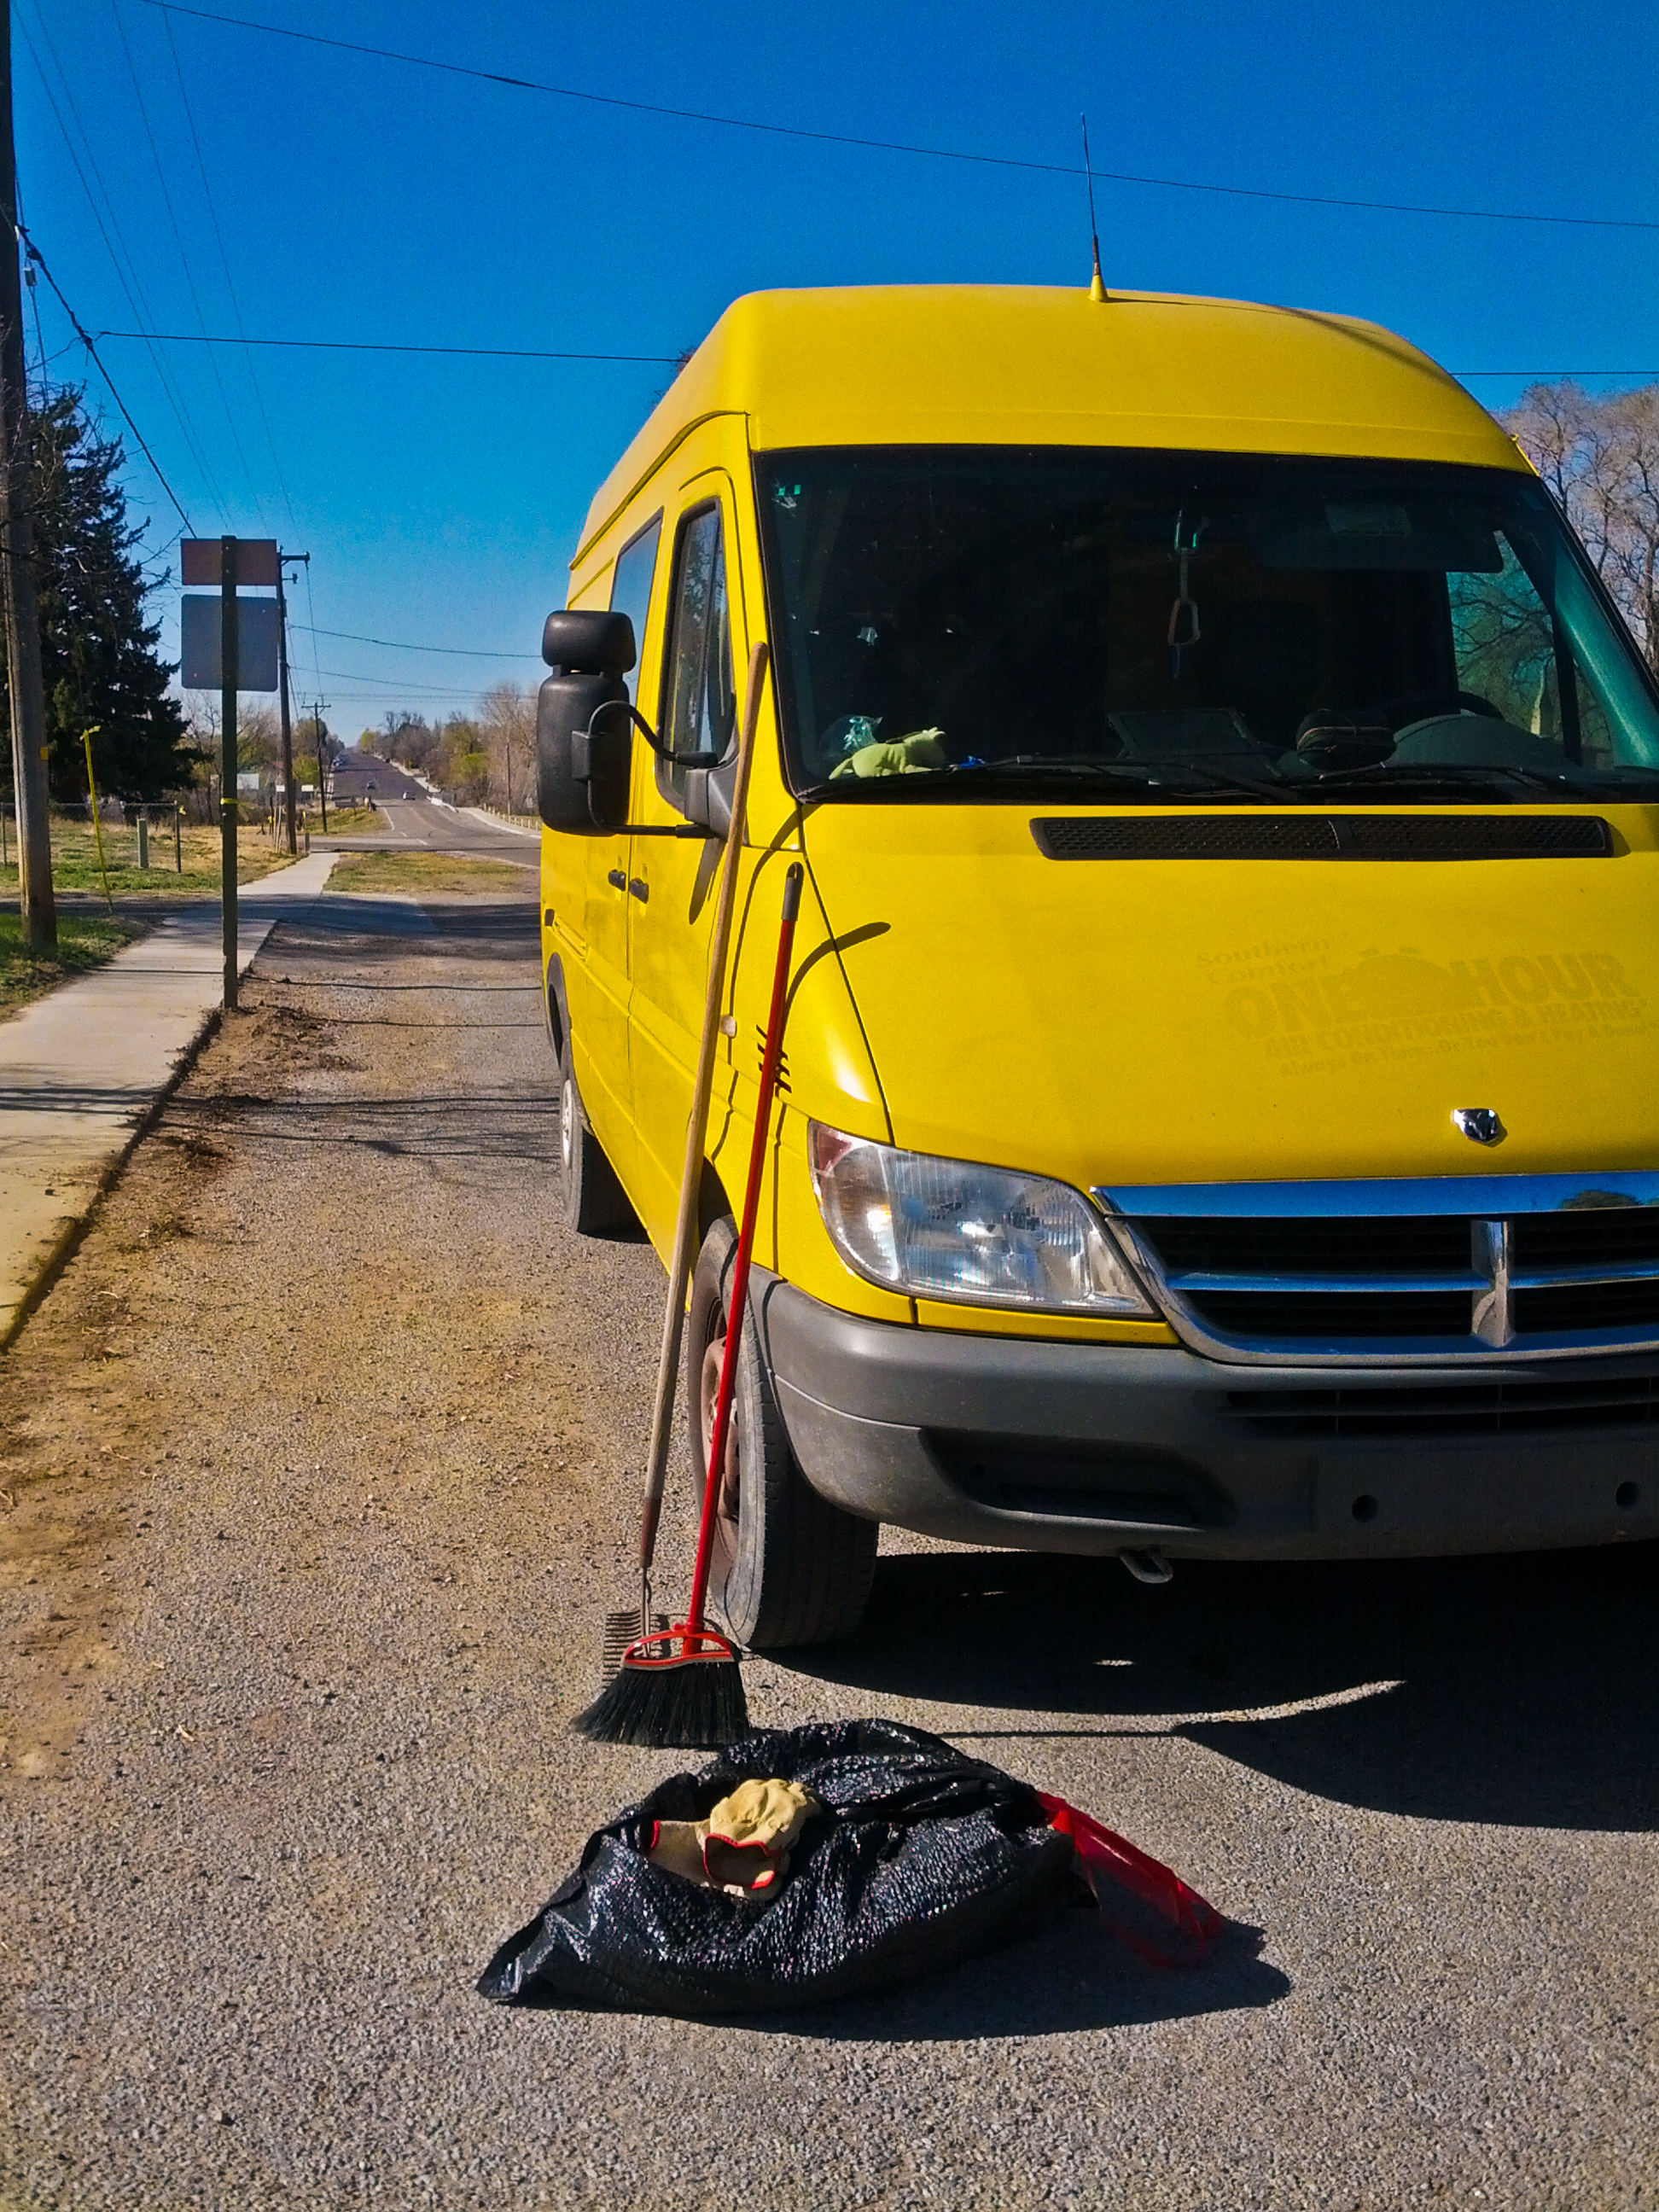 The Sprinter you can't miss, helping hold our clean-up tools.